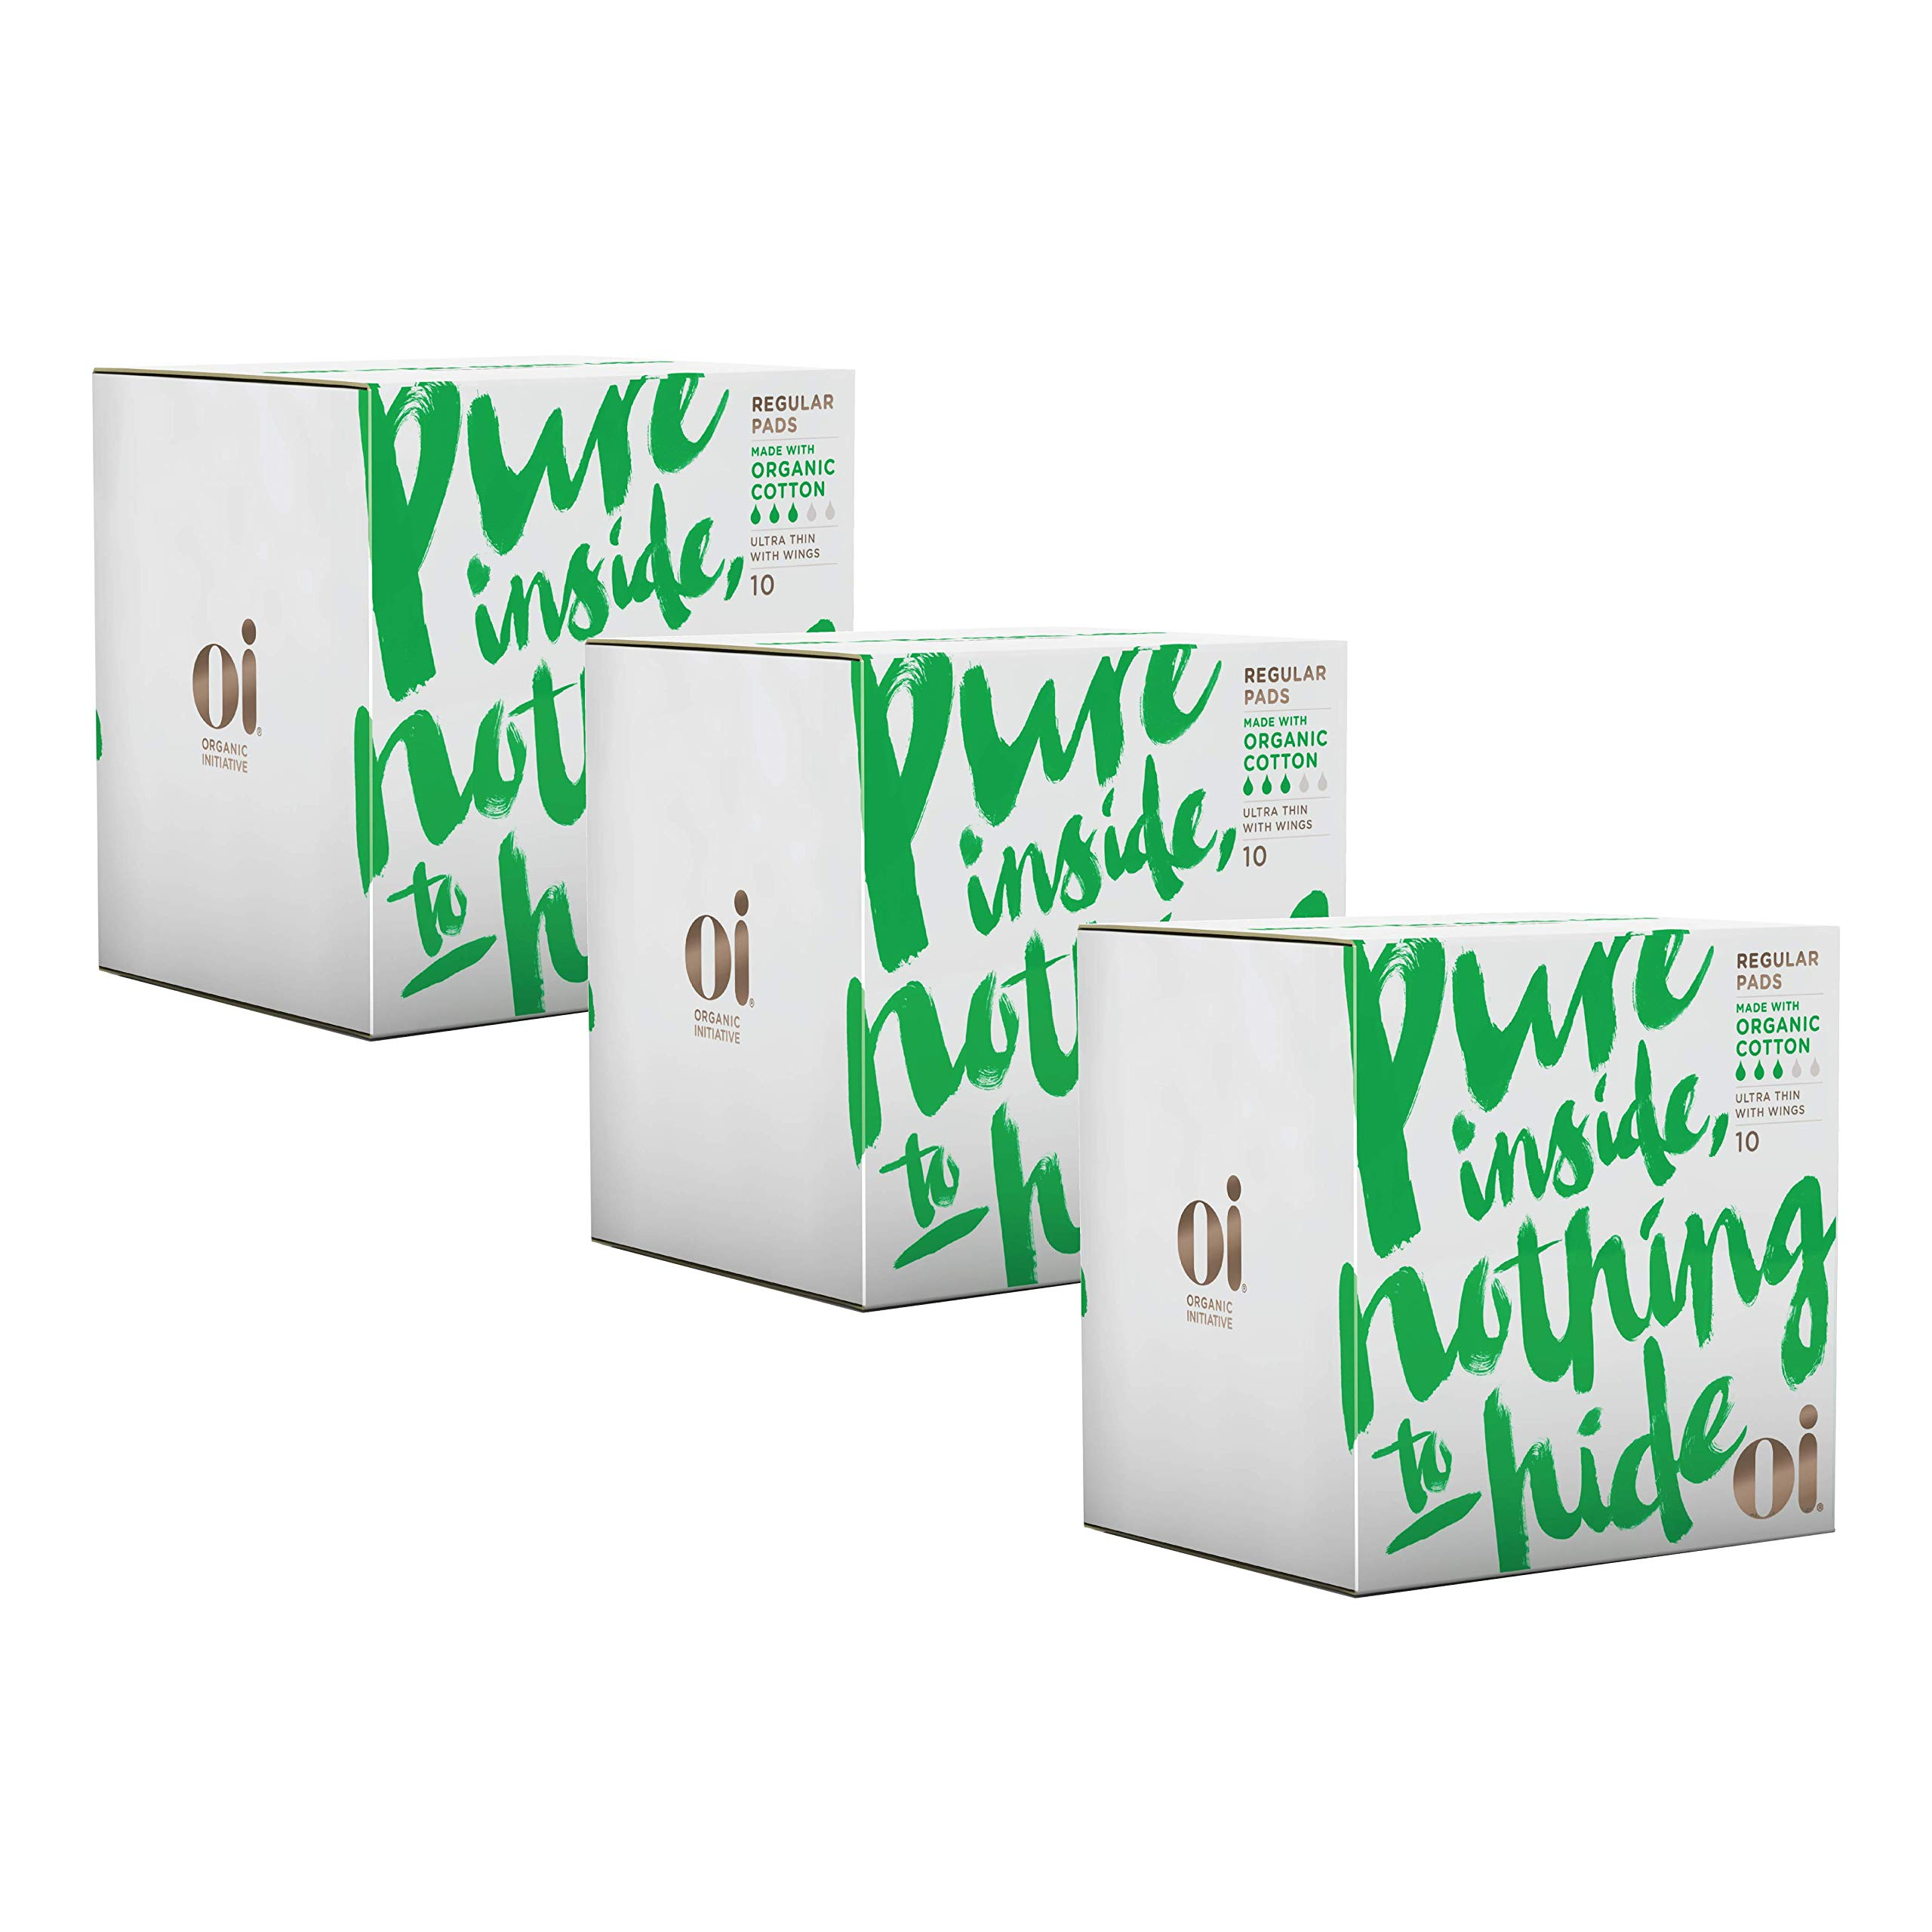 Oi Certified Organic Cotton Pads | 3 Boxes of 10 Regular Pads | Individually-Wrapped